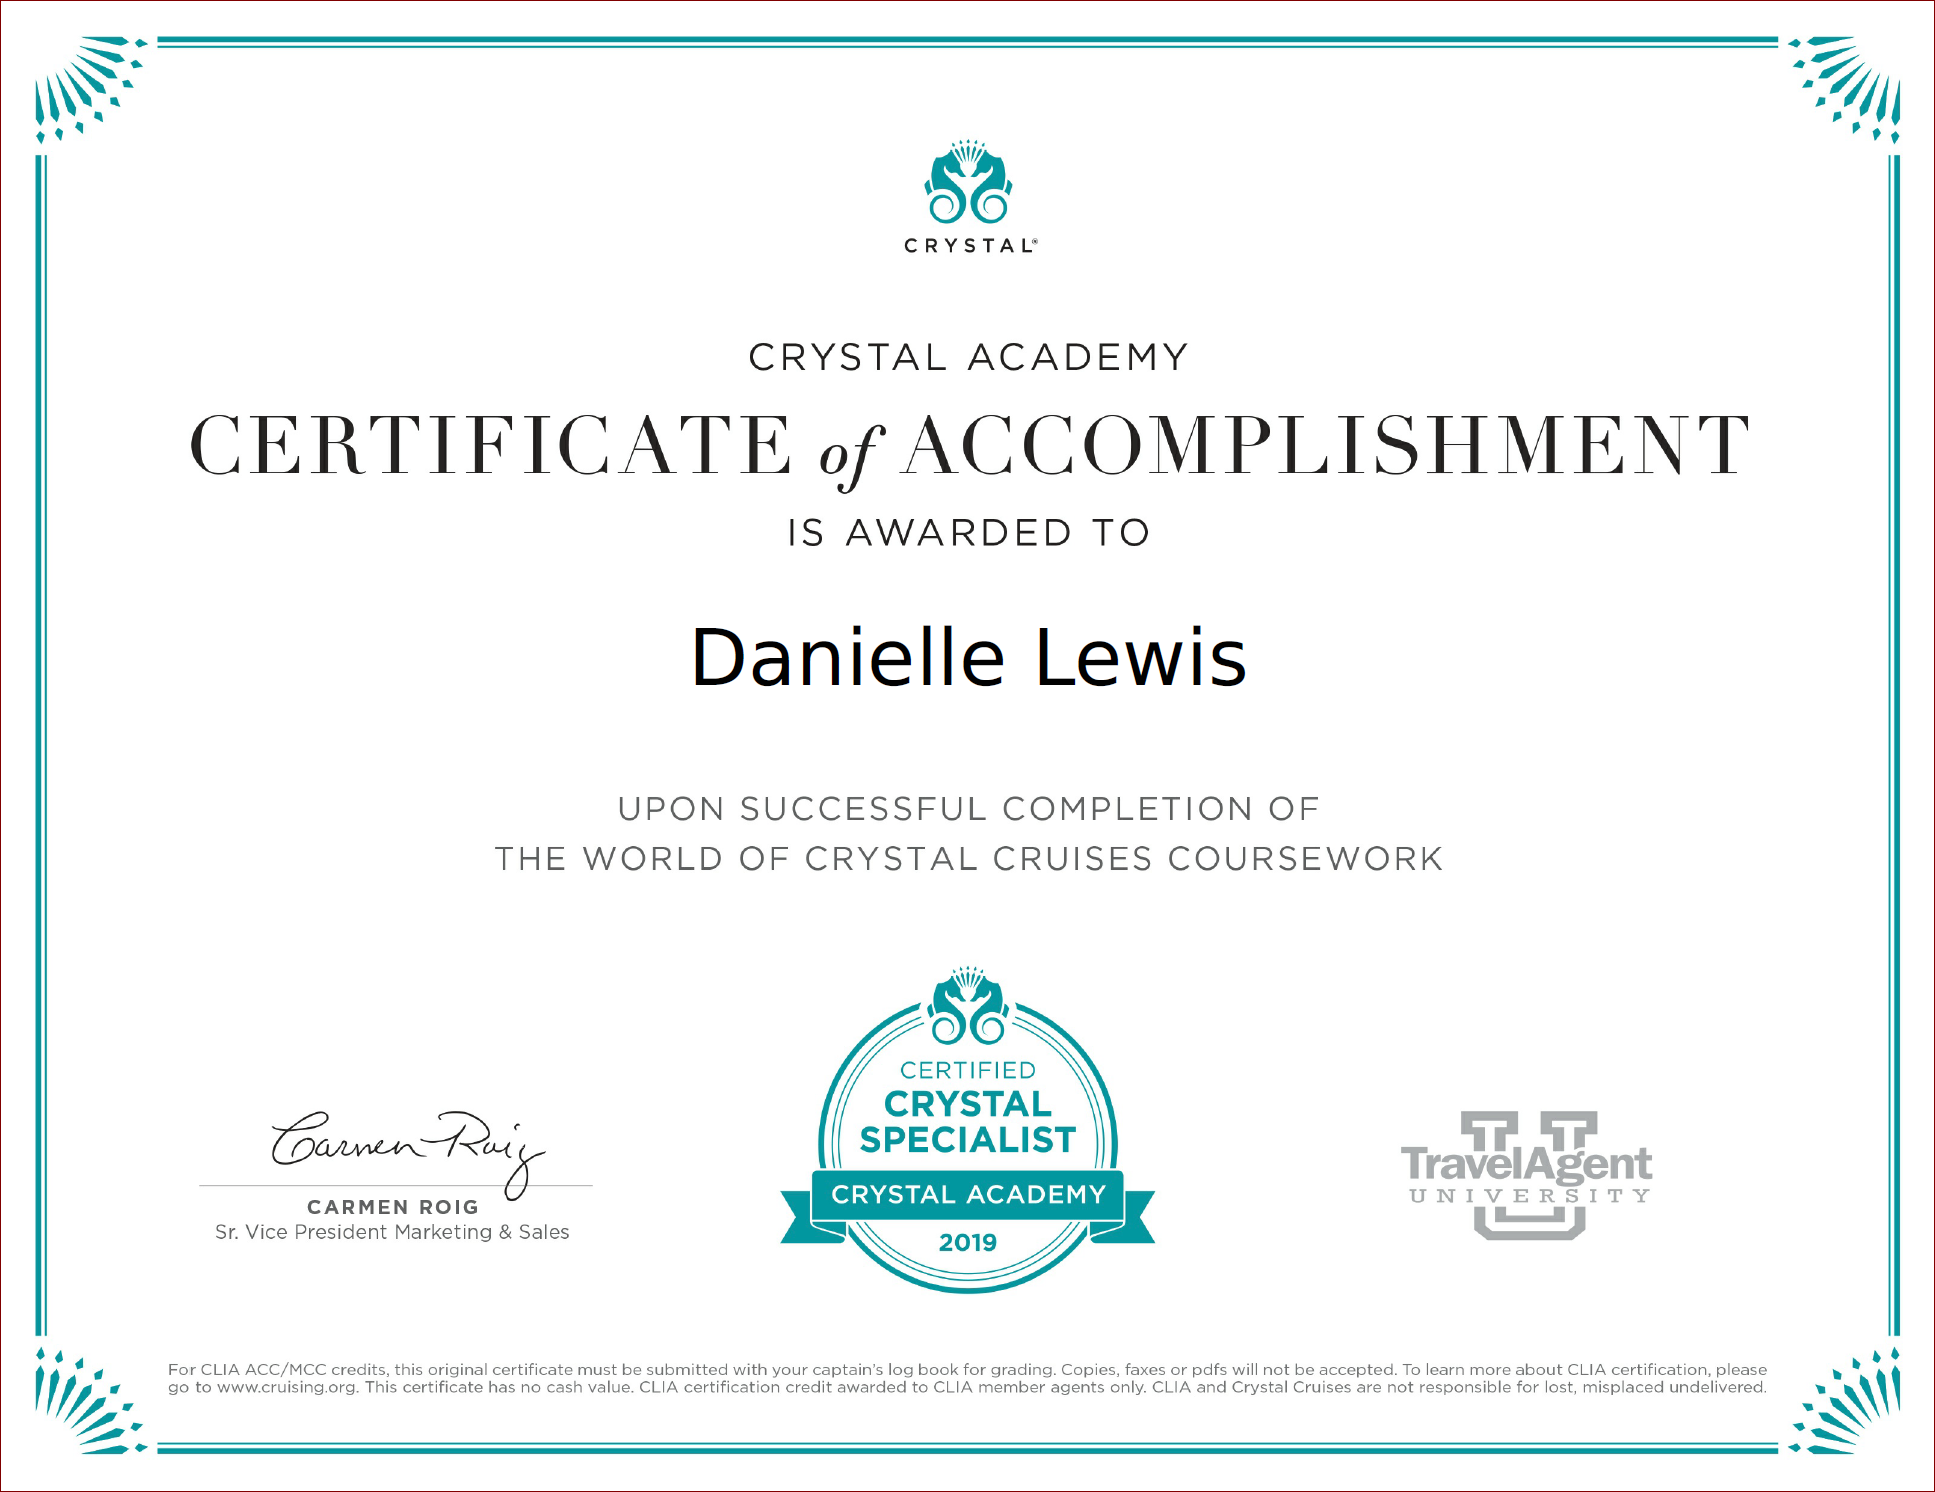 SelfishMe Travel - Crystal Cruises The World of Crystal Cruises certificate